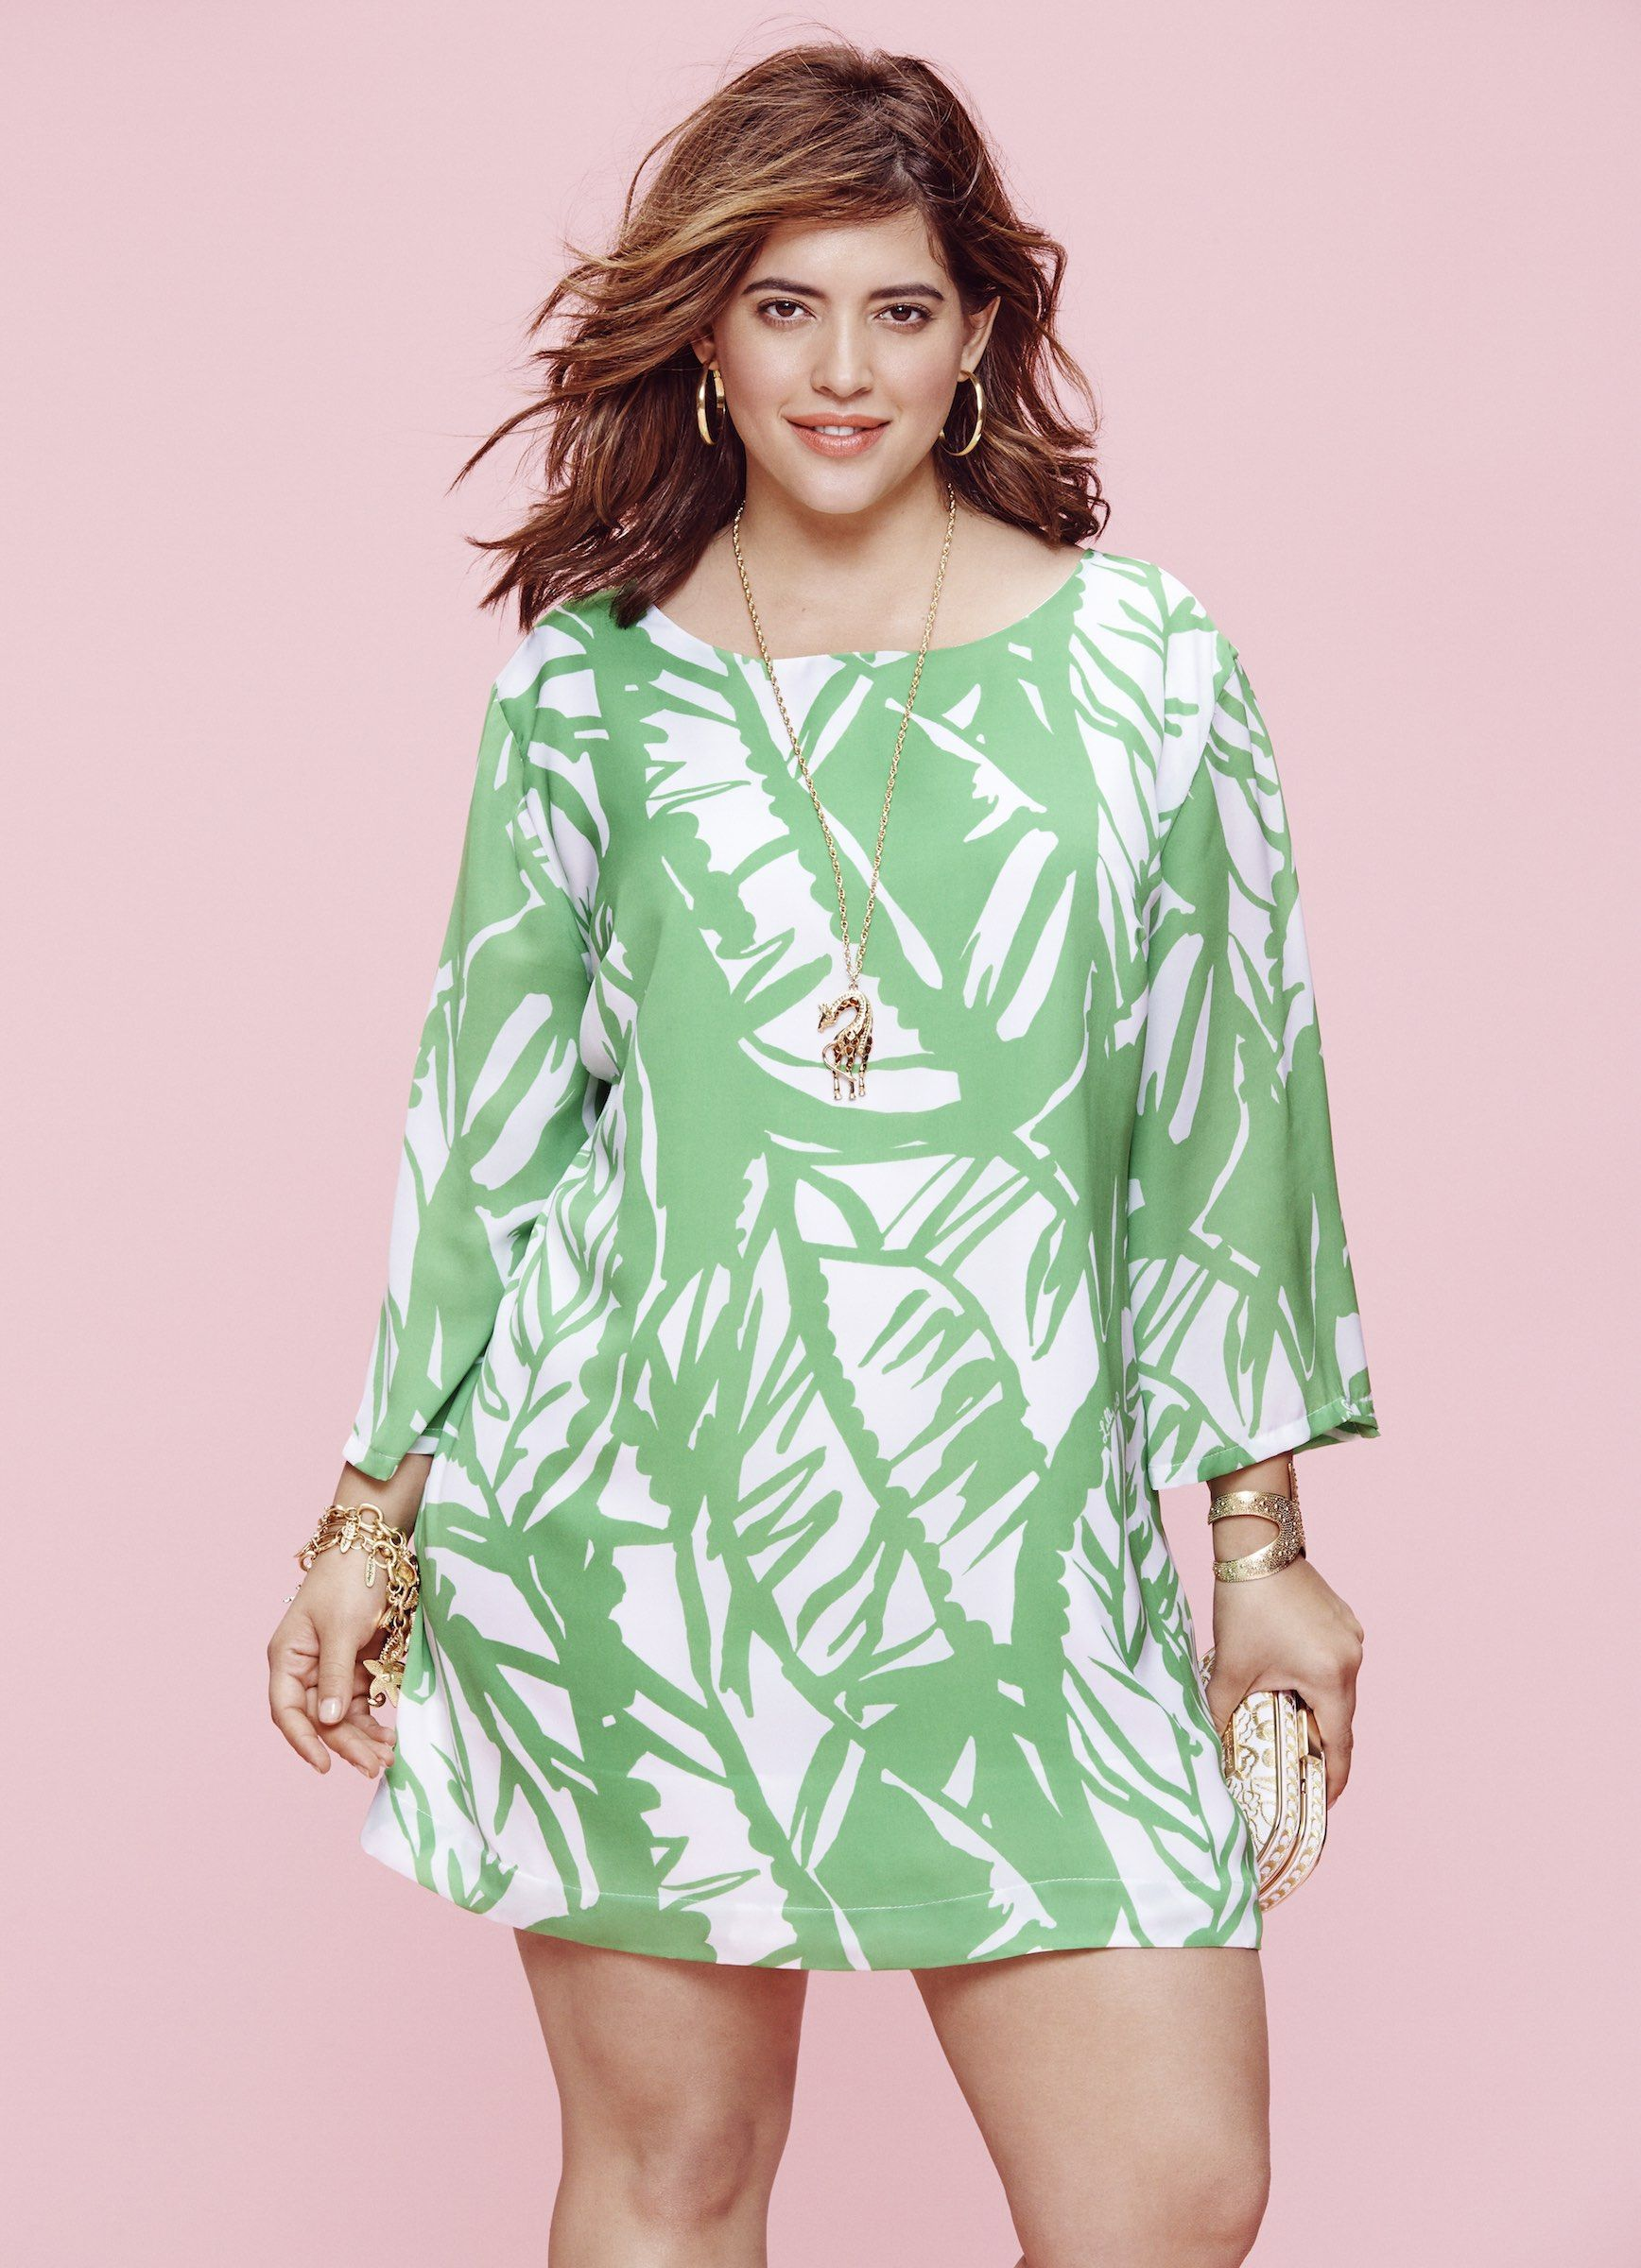 27a1379a0da67 Target Releases the Lilly Pulitzer LookBook with Plus Size Looks ...